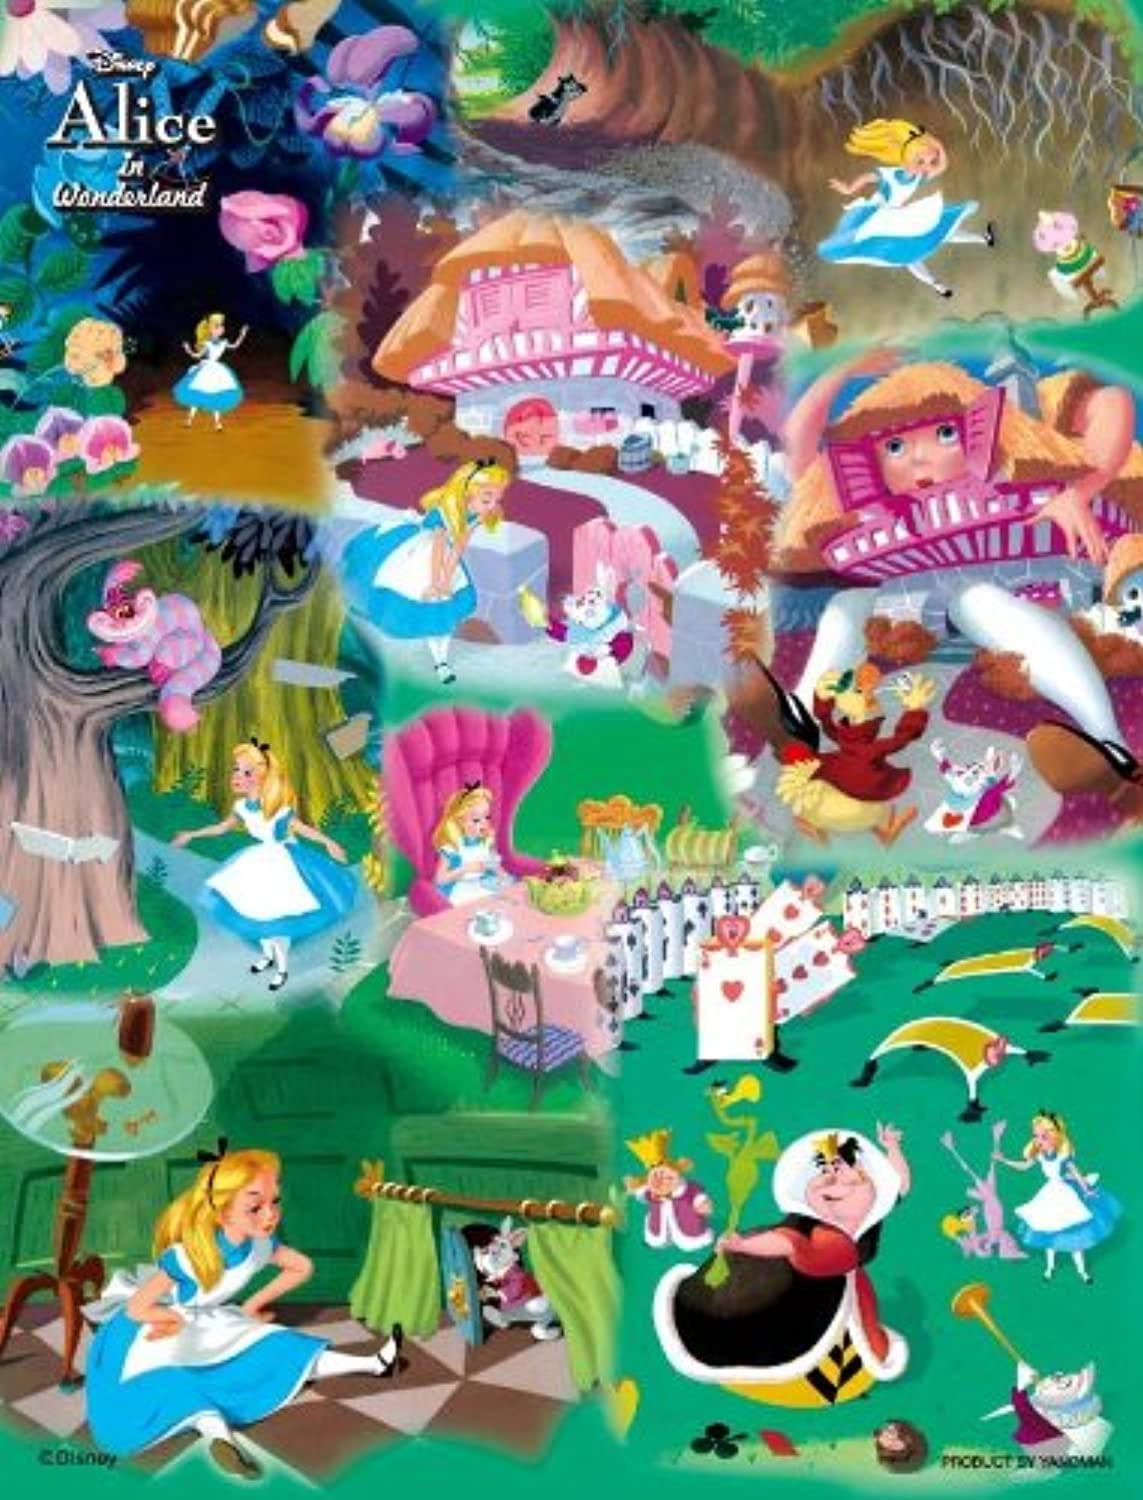 To the country of Disney jigsaw puzzle bubble wrap 500 piece wonder (Alice) 4195 (japan import)